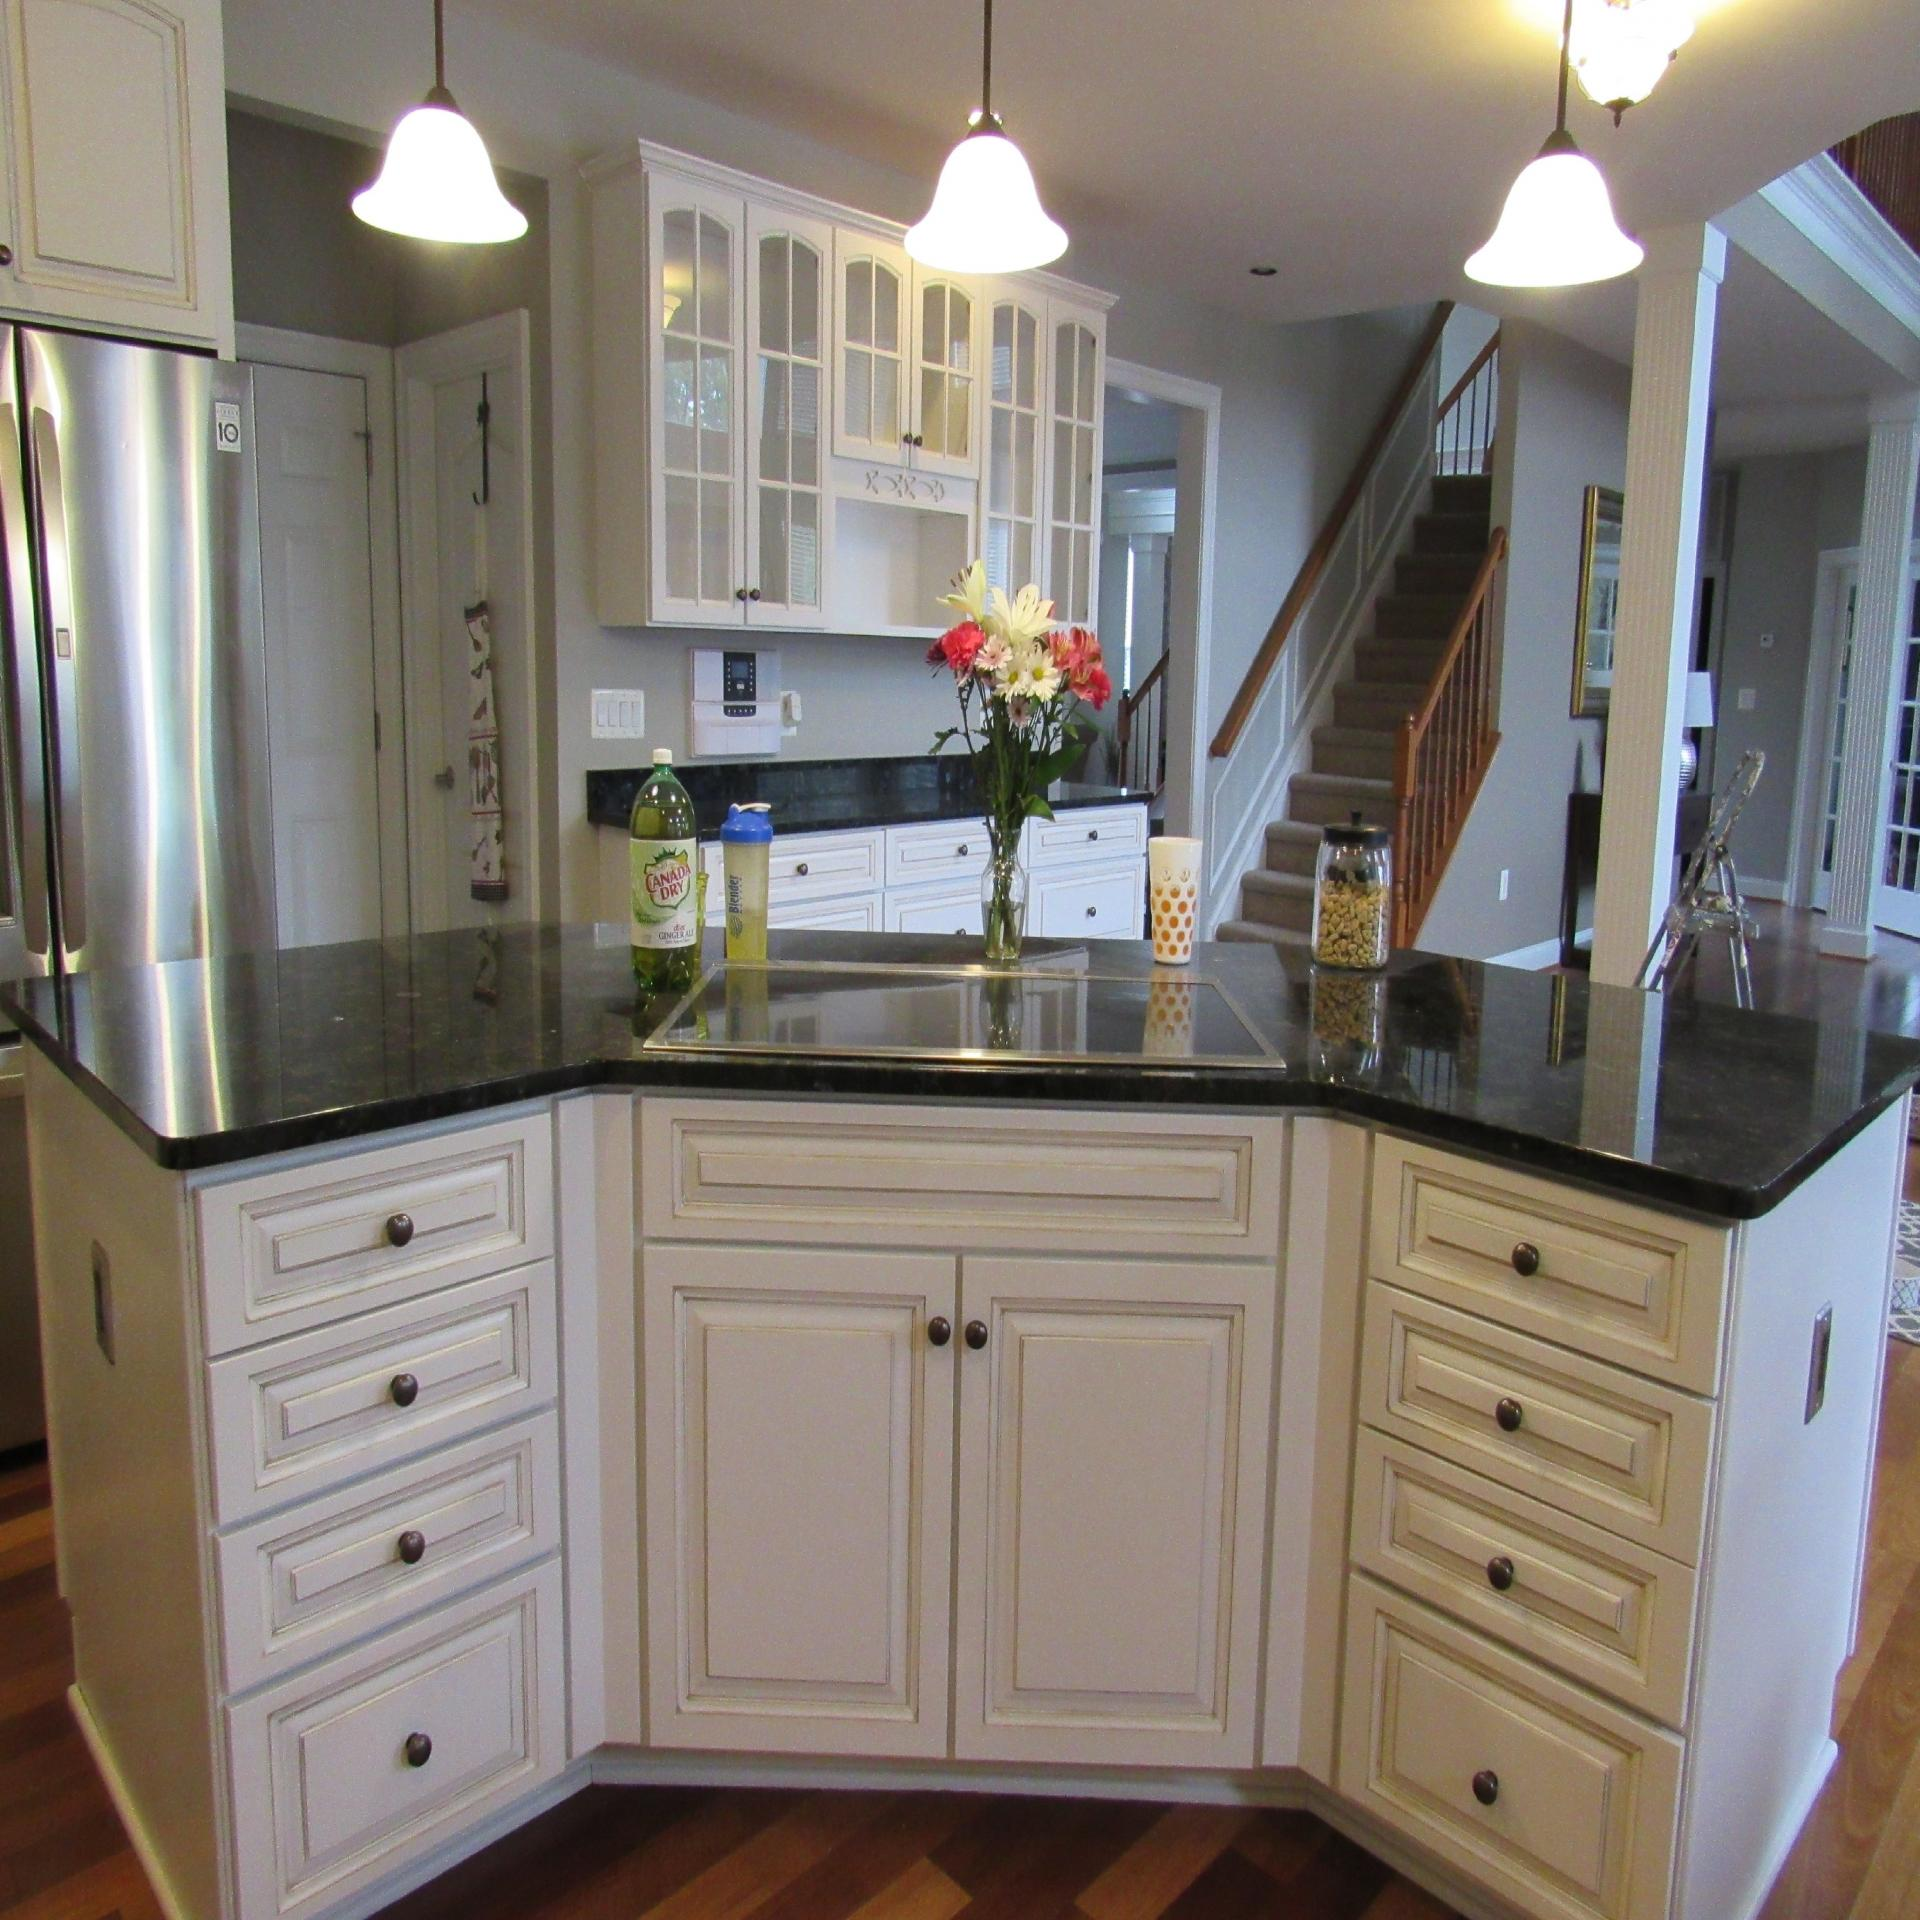 We specialize in making your kitchen look and feel new by ...